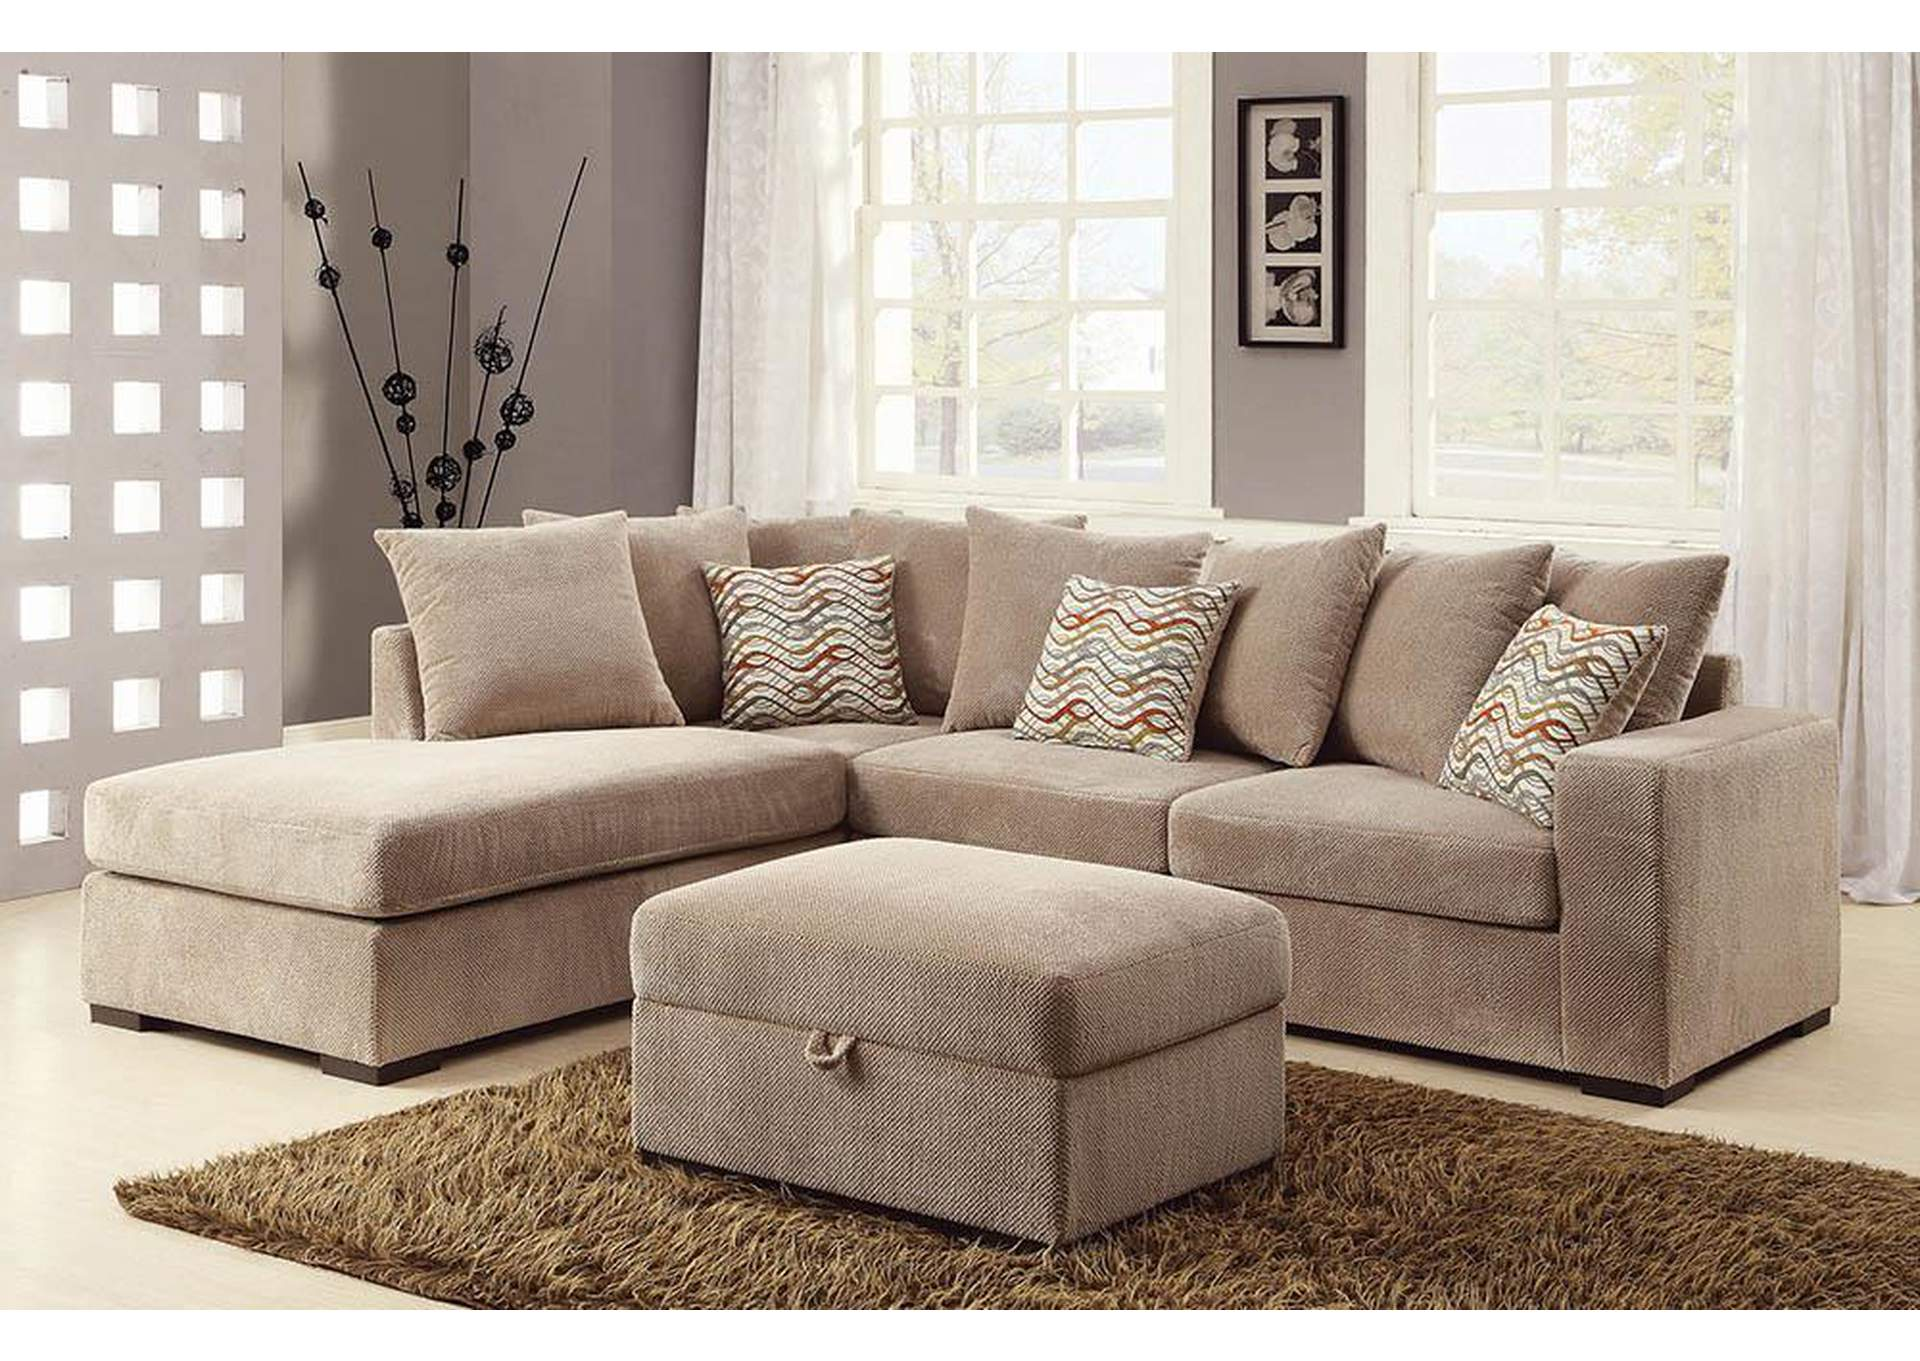 living room sets in miami fl asian paints colors for big box furniture discount stores florida taupe